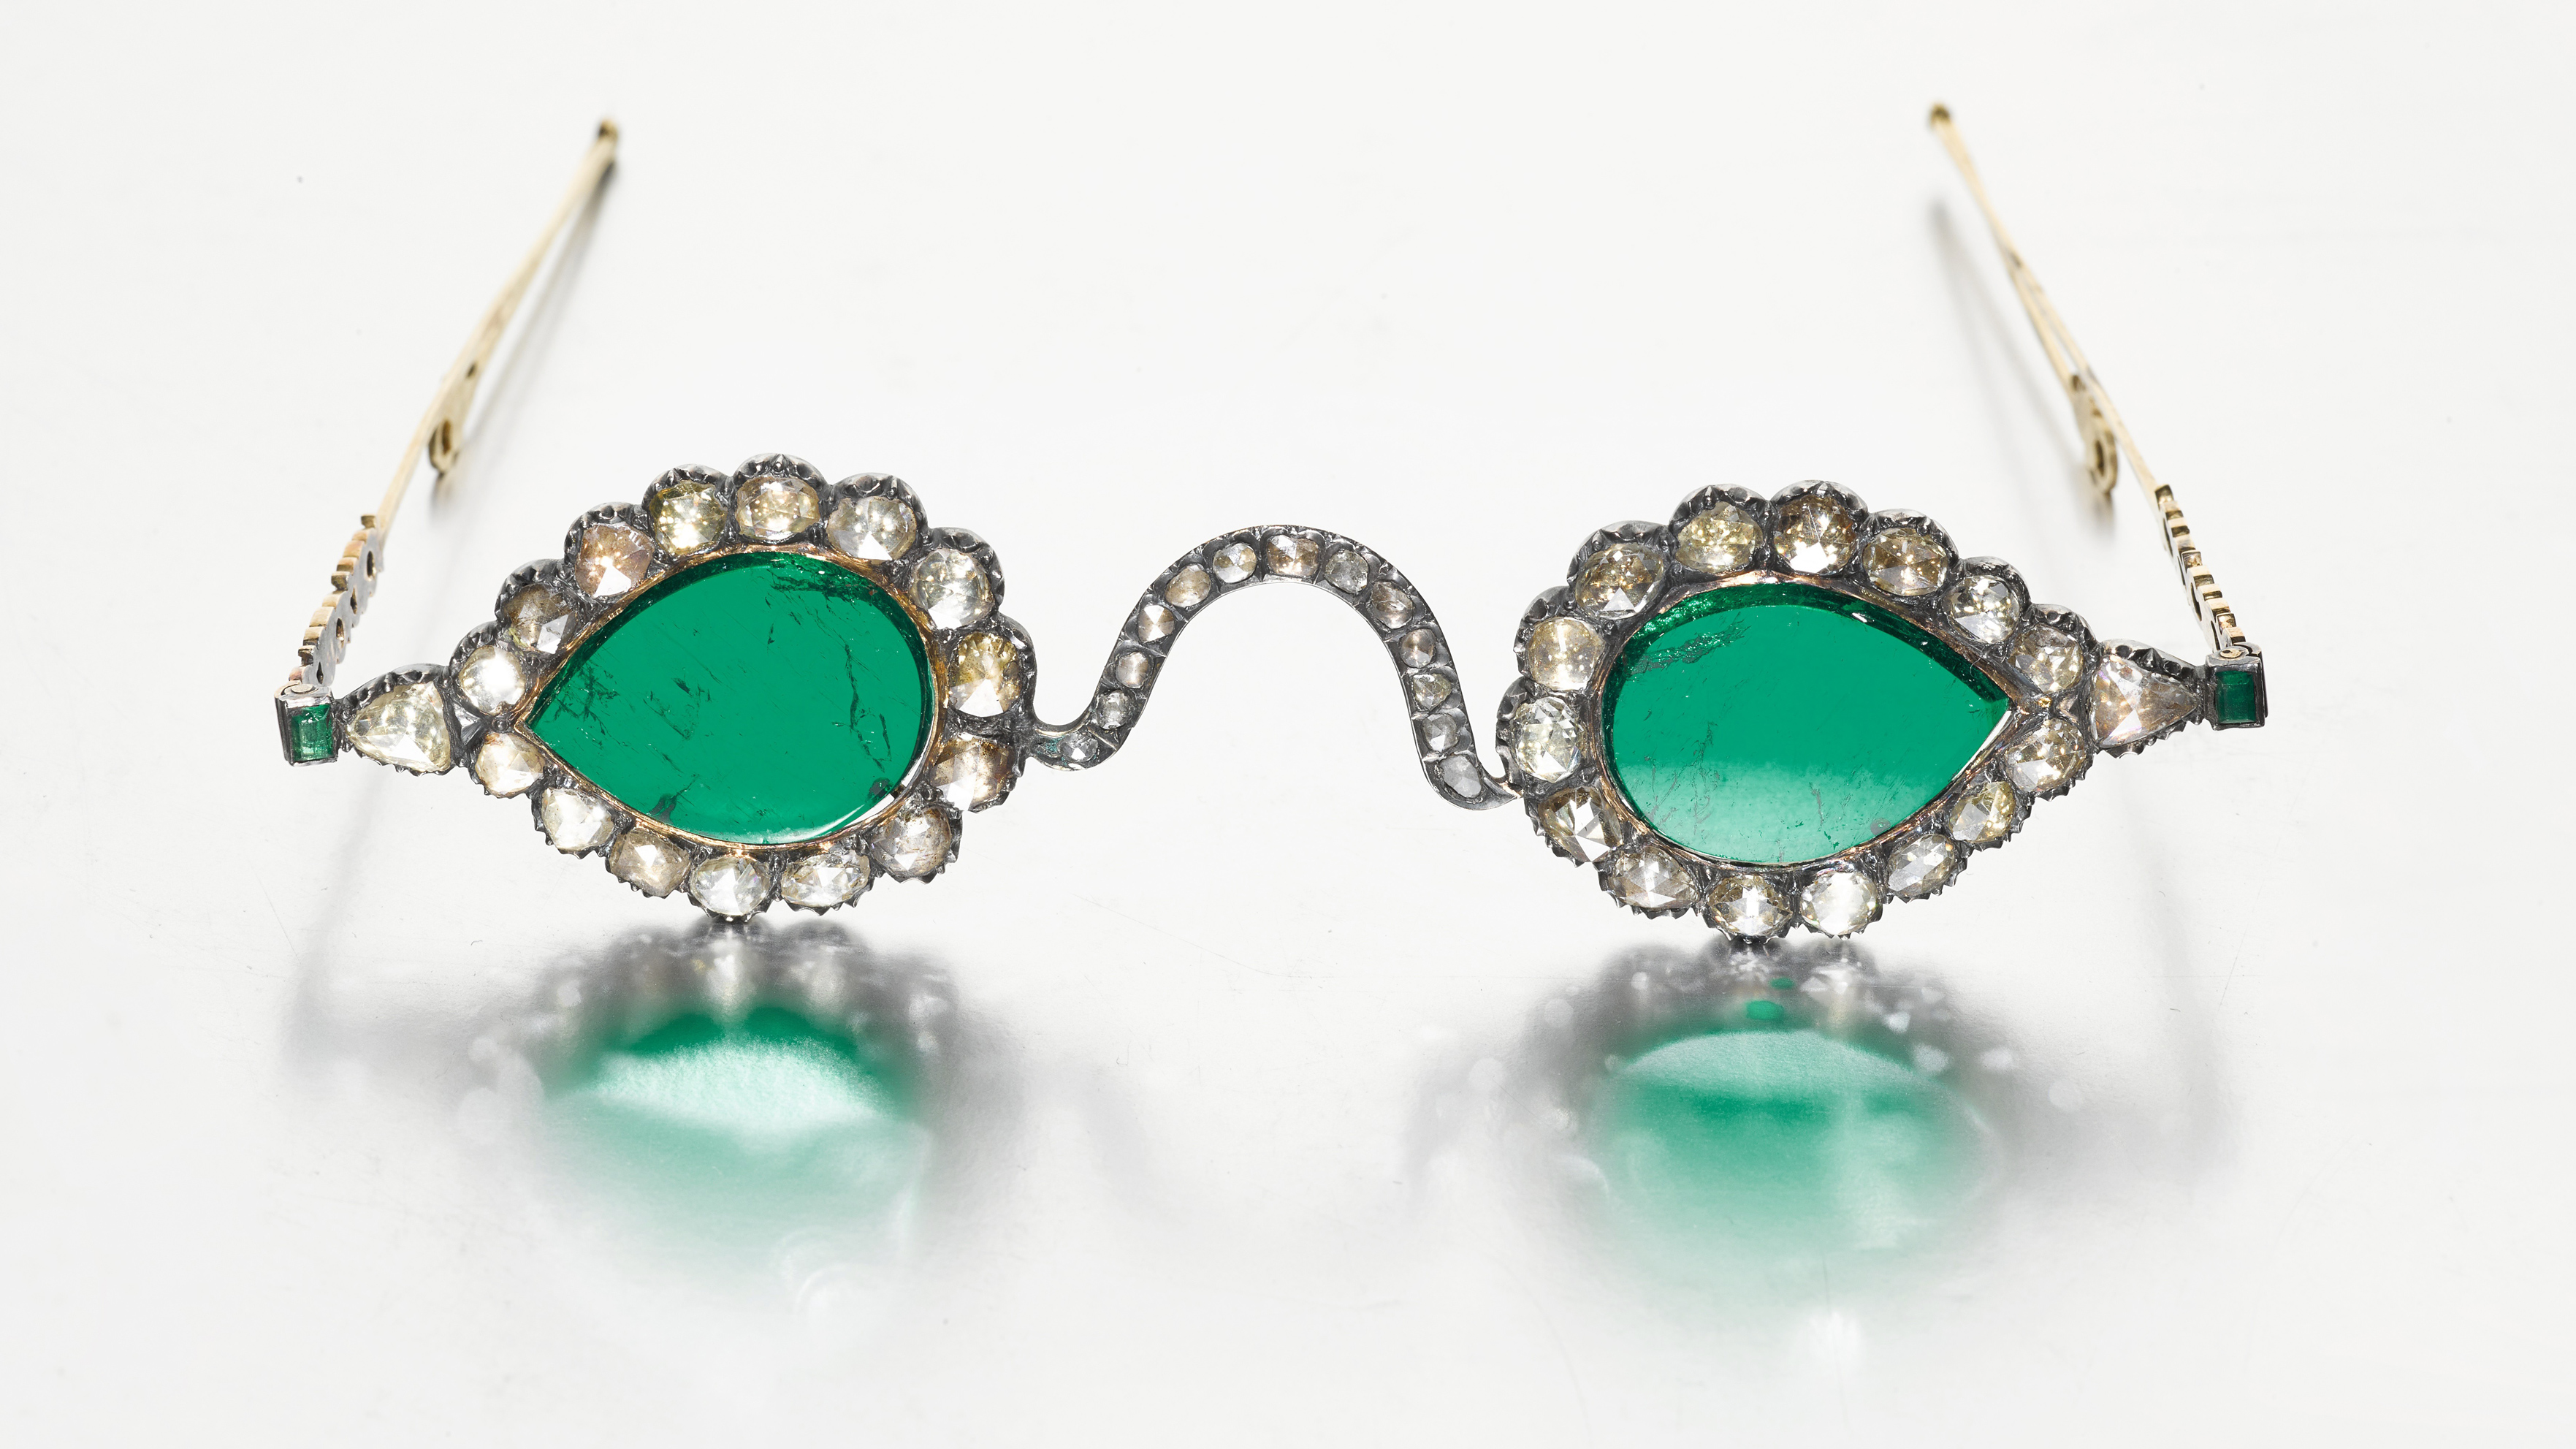 """The """"Gate of Paradise"""" glasses are thought to have been cut from a Colombian emerald."""